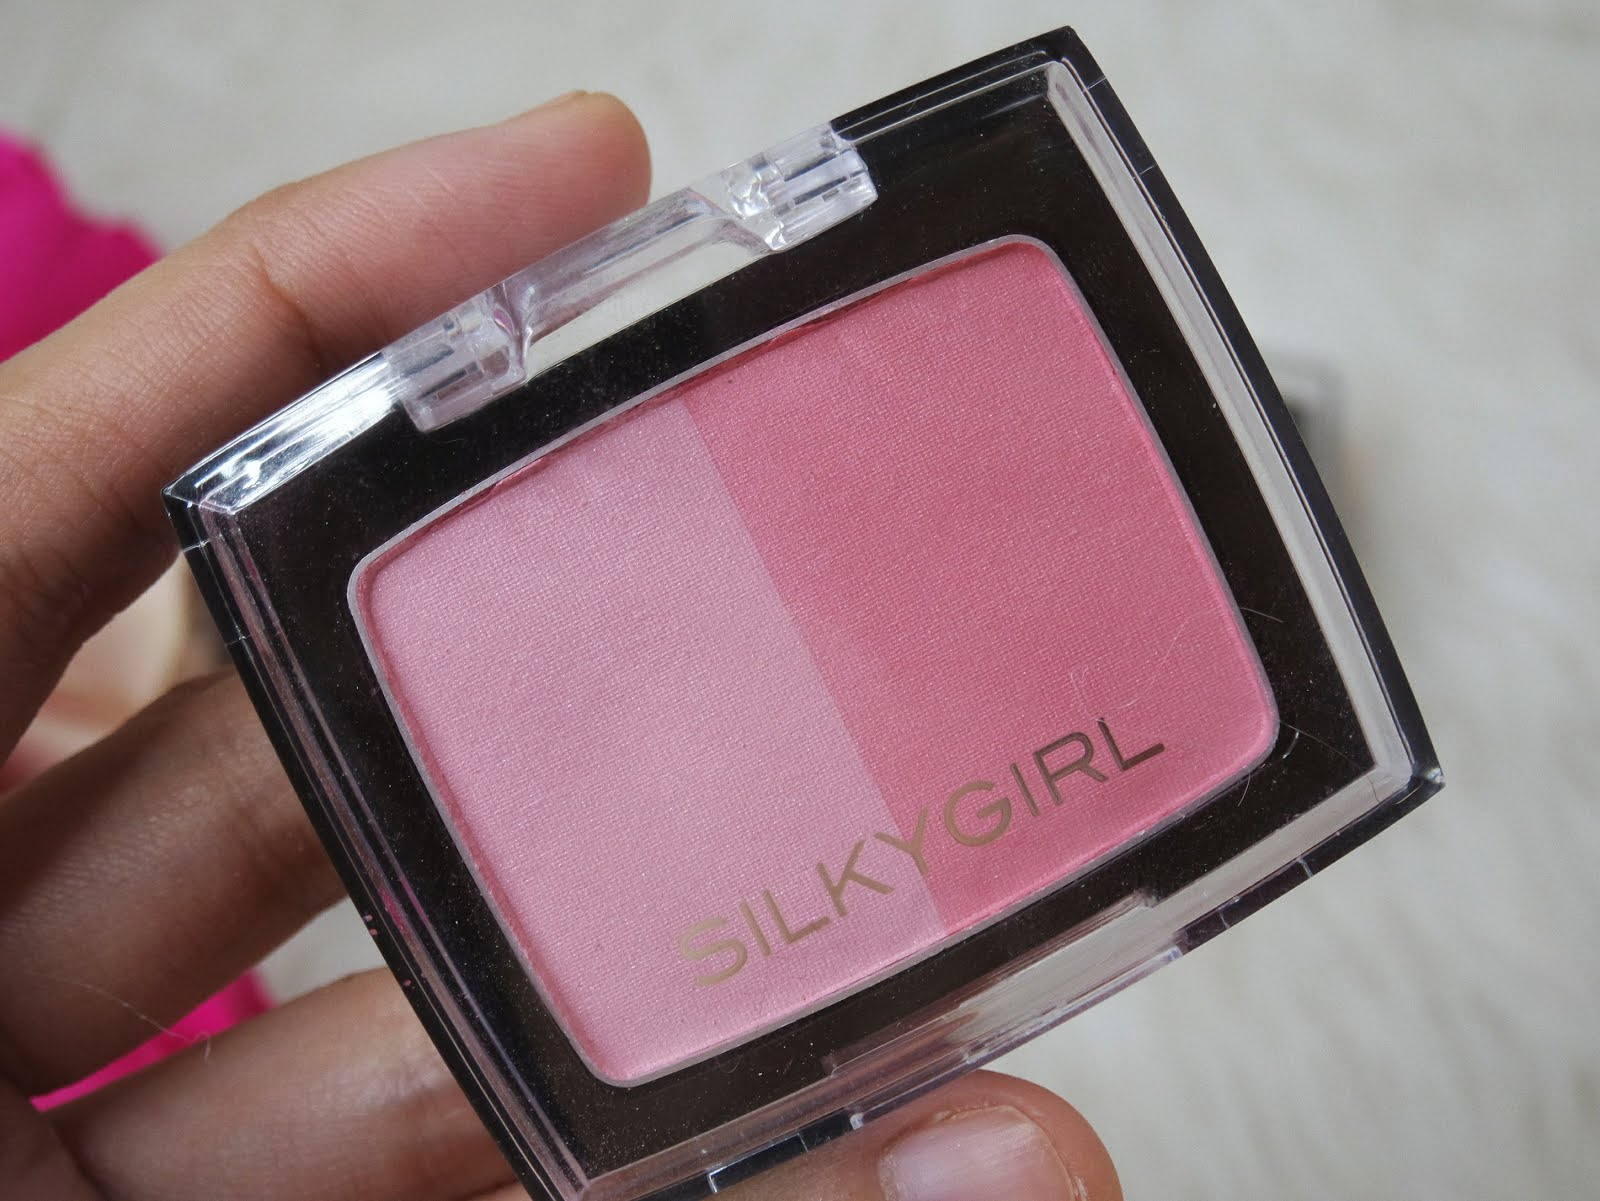 Silkygirl Shimmer Duo Blusher 02 Blushing Pink Daftar Harga Nez Color Contour Plus Amaranth There Are 4 Shades Available 01 Cheeky Peach 03 Rose